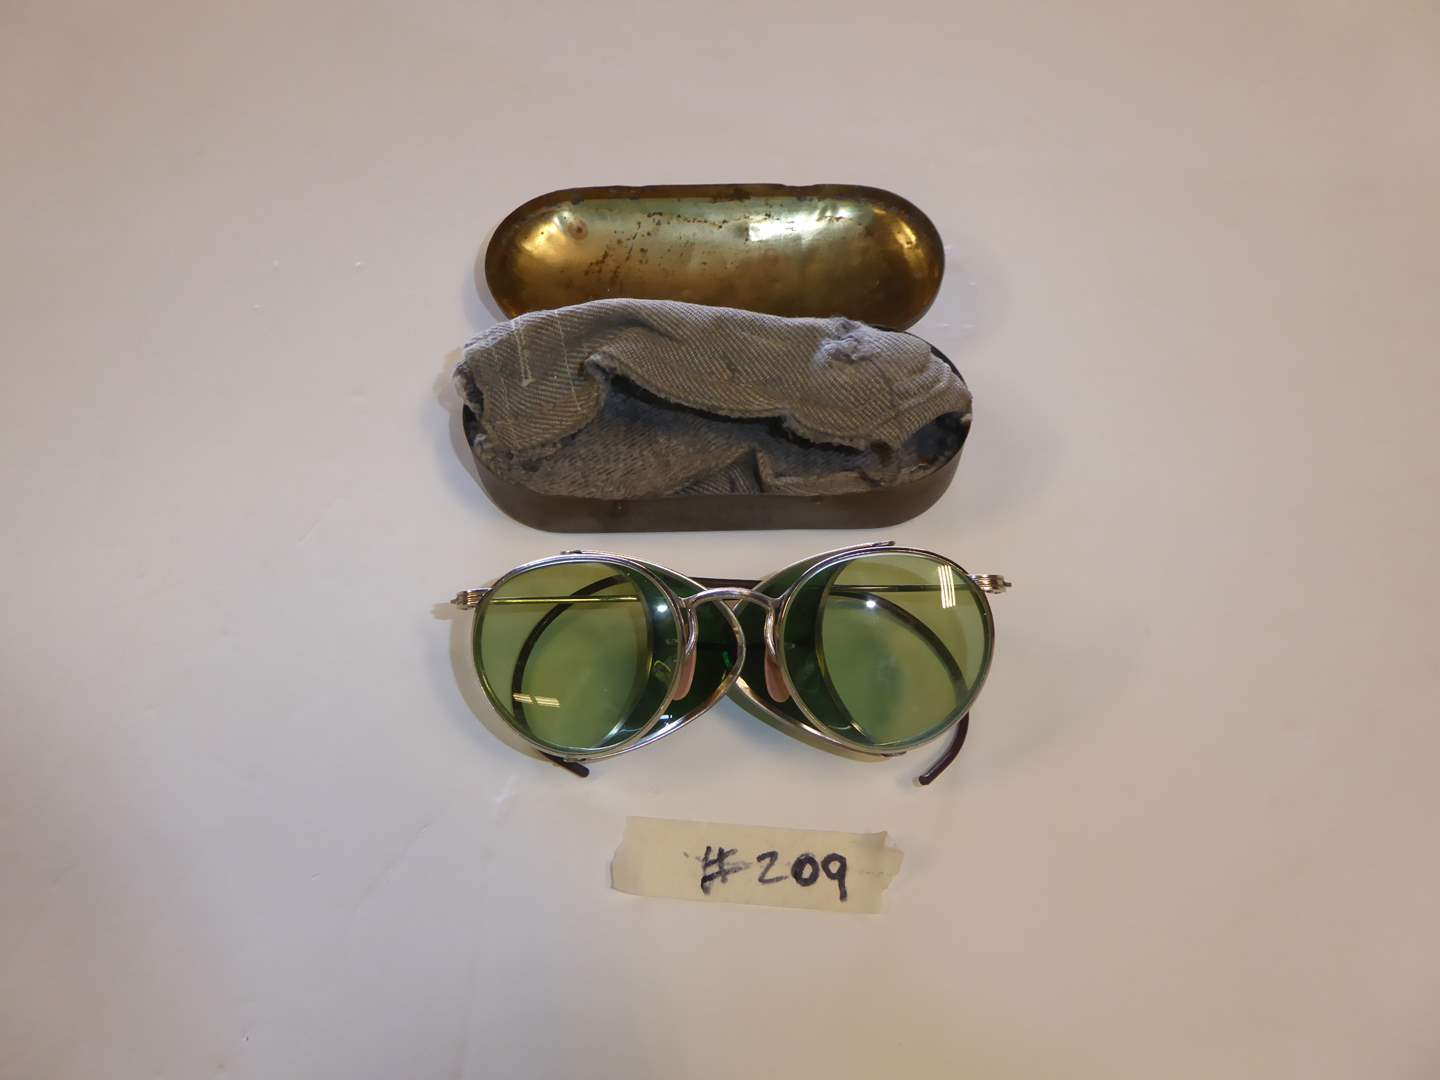 Lot # 209 - Vintage Green Motorcycle Glasses/Safety Goggles AO Lenses (Willson Case)  (main image)